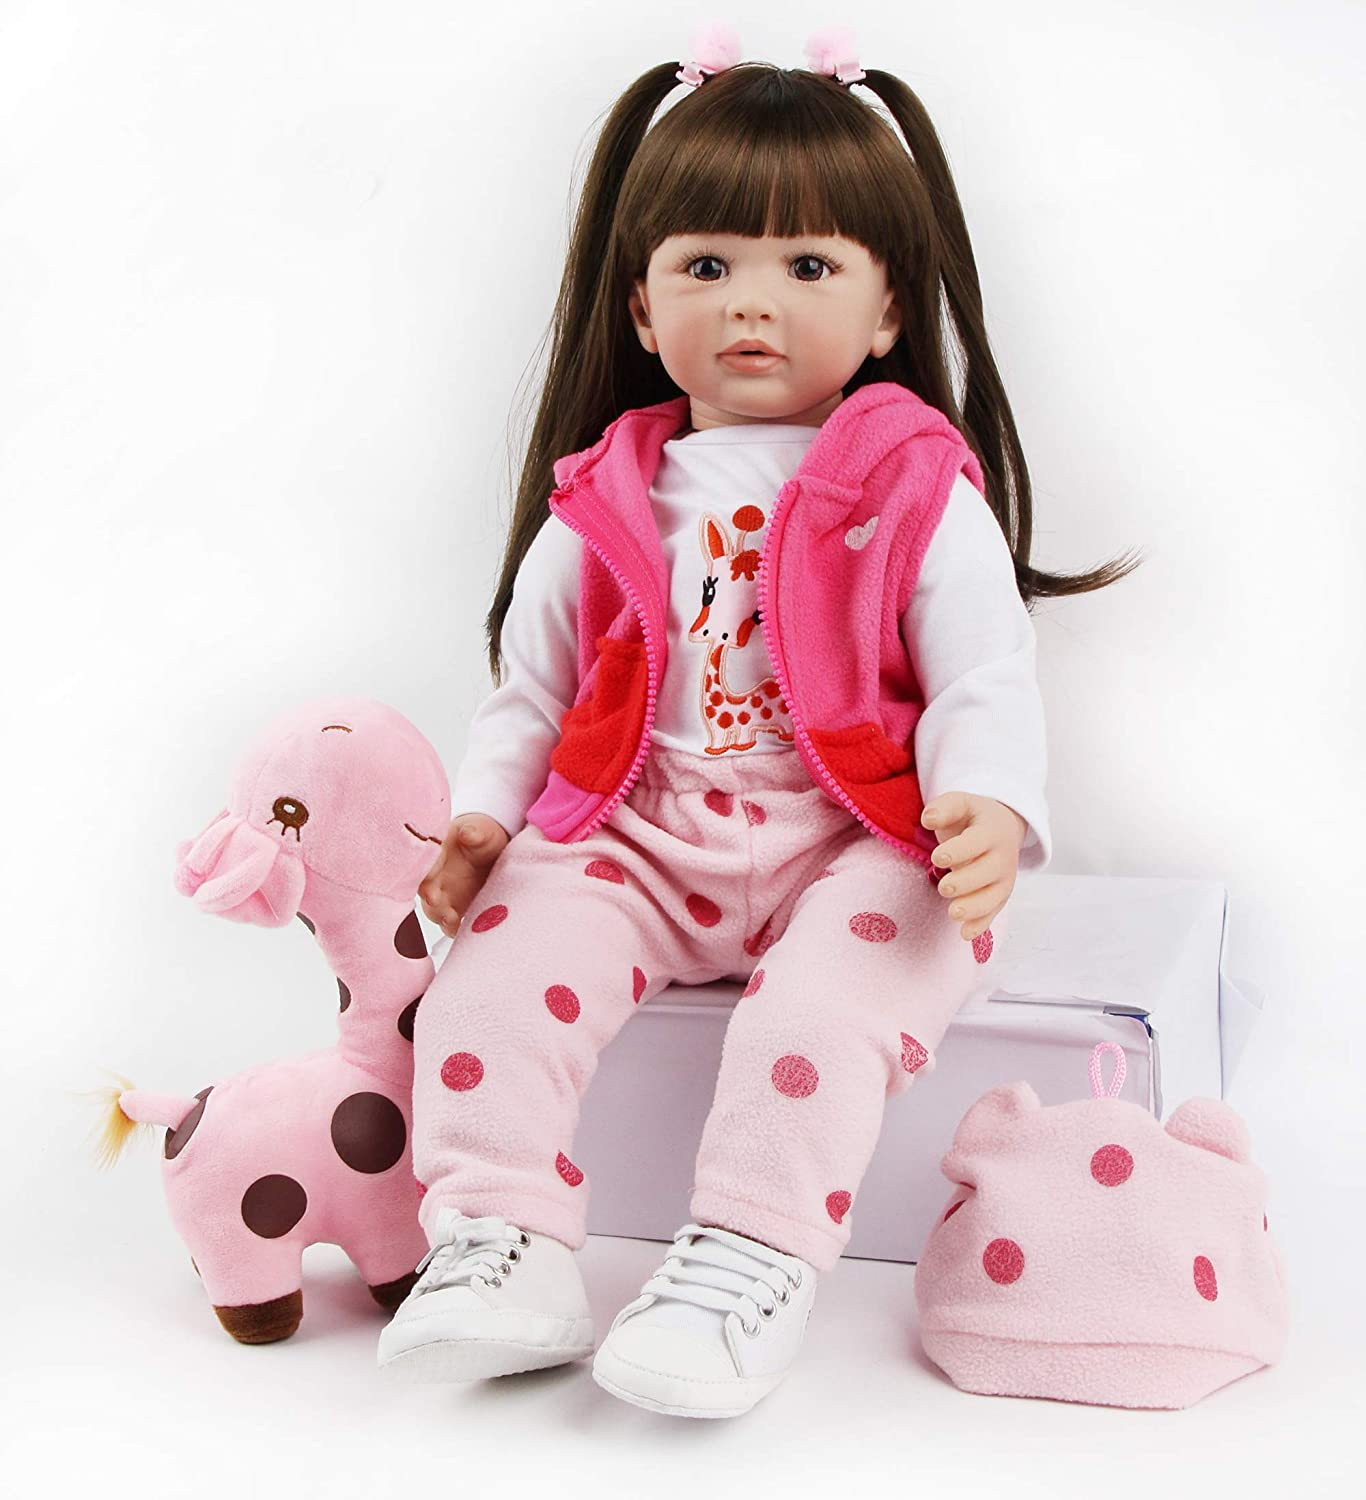 antboat Lovely 19inch 48cm Reborn Baby Dolls Girl Vinyl Soft Silicone Real Life